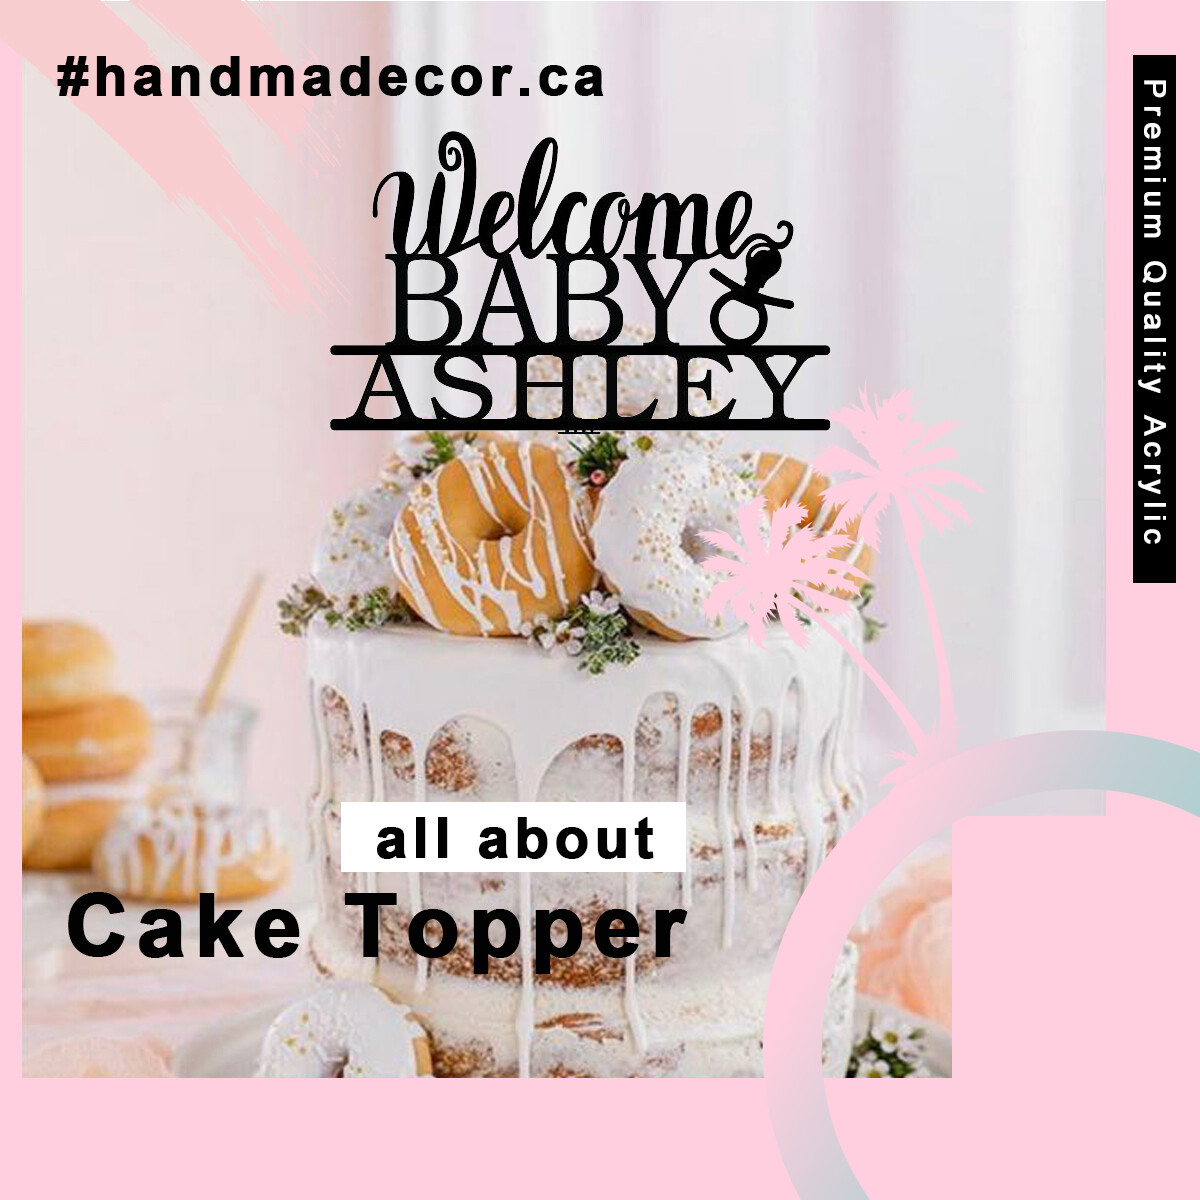 Welcome Baby  cake topper- Acrylic welcome baby cake topper - Acrylic Cake topper